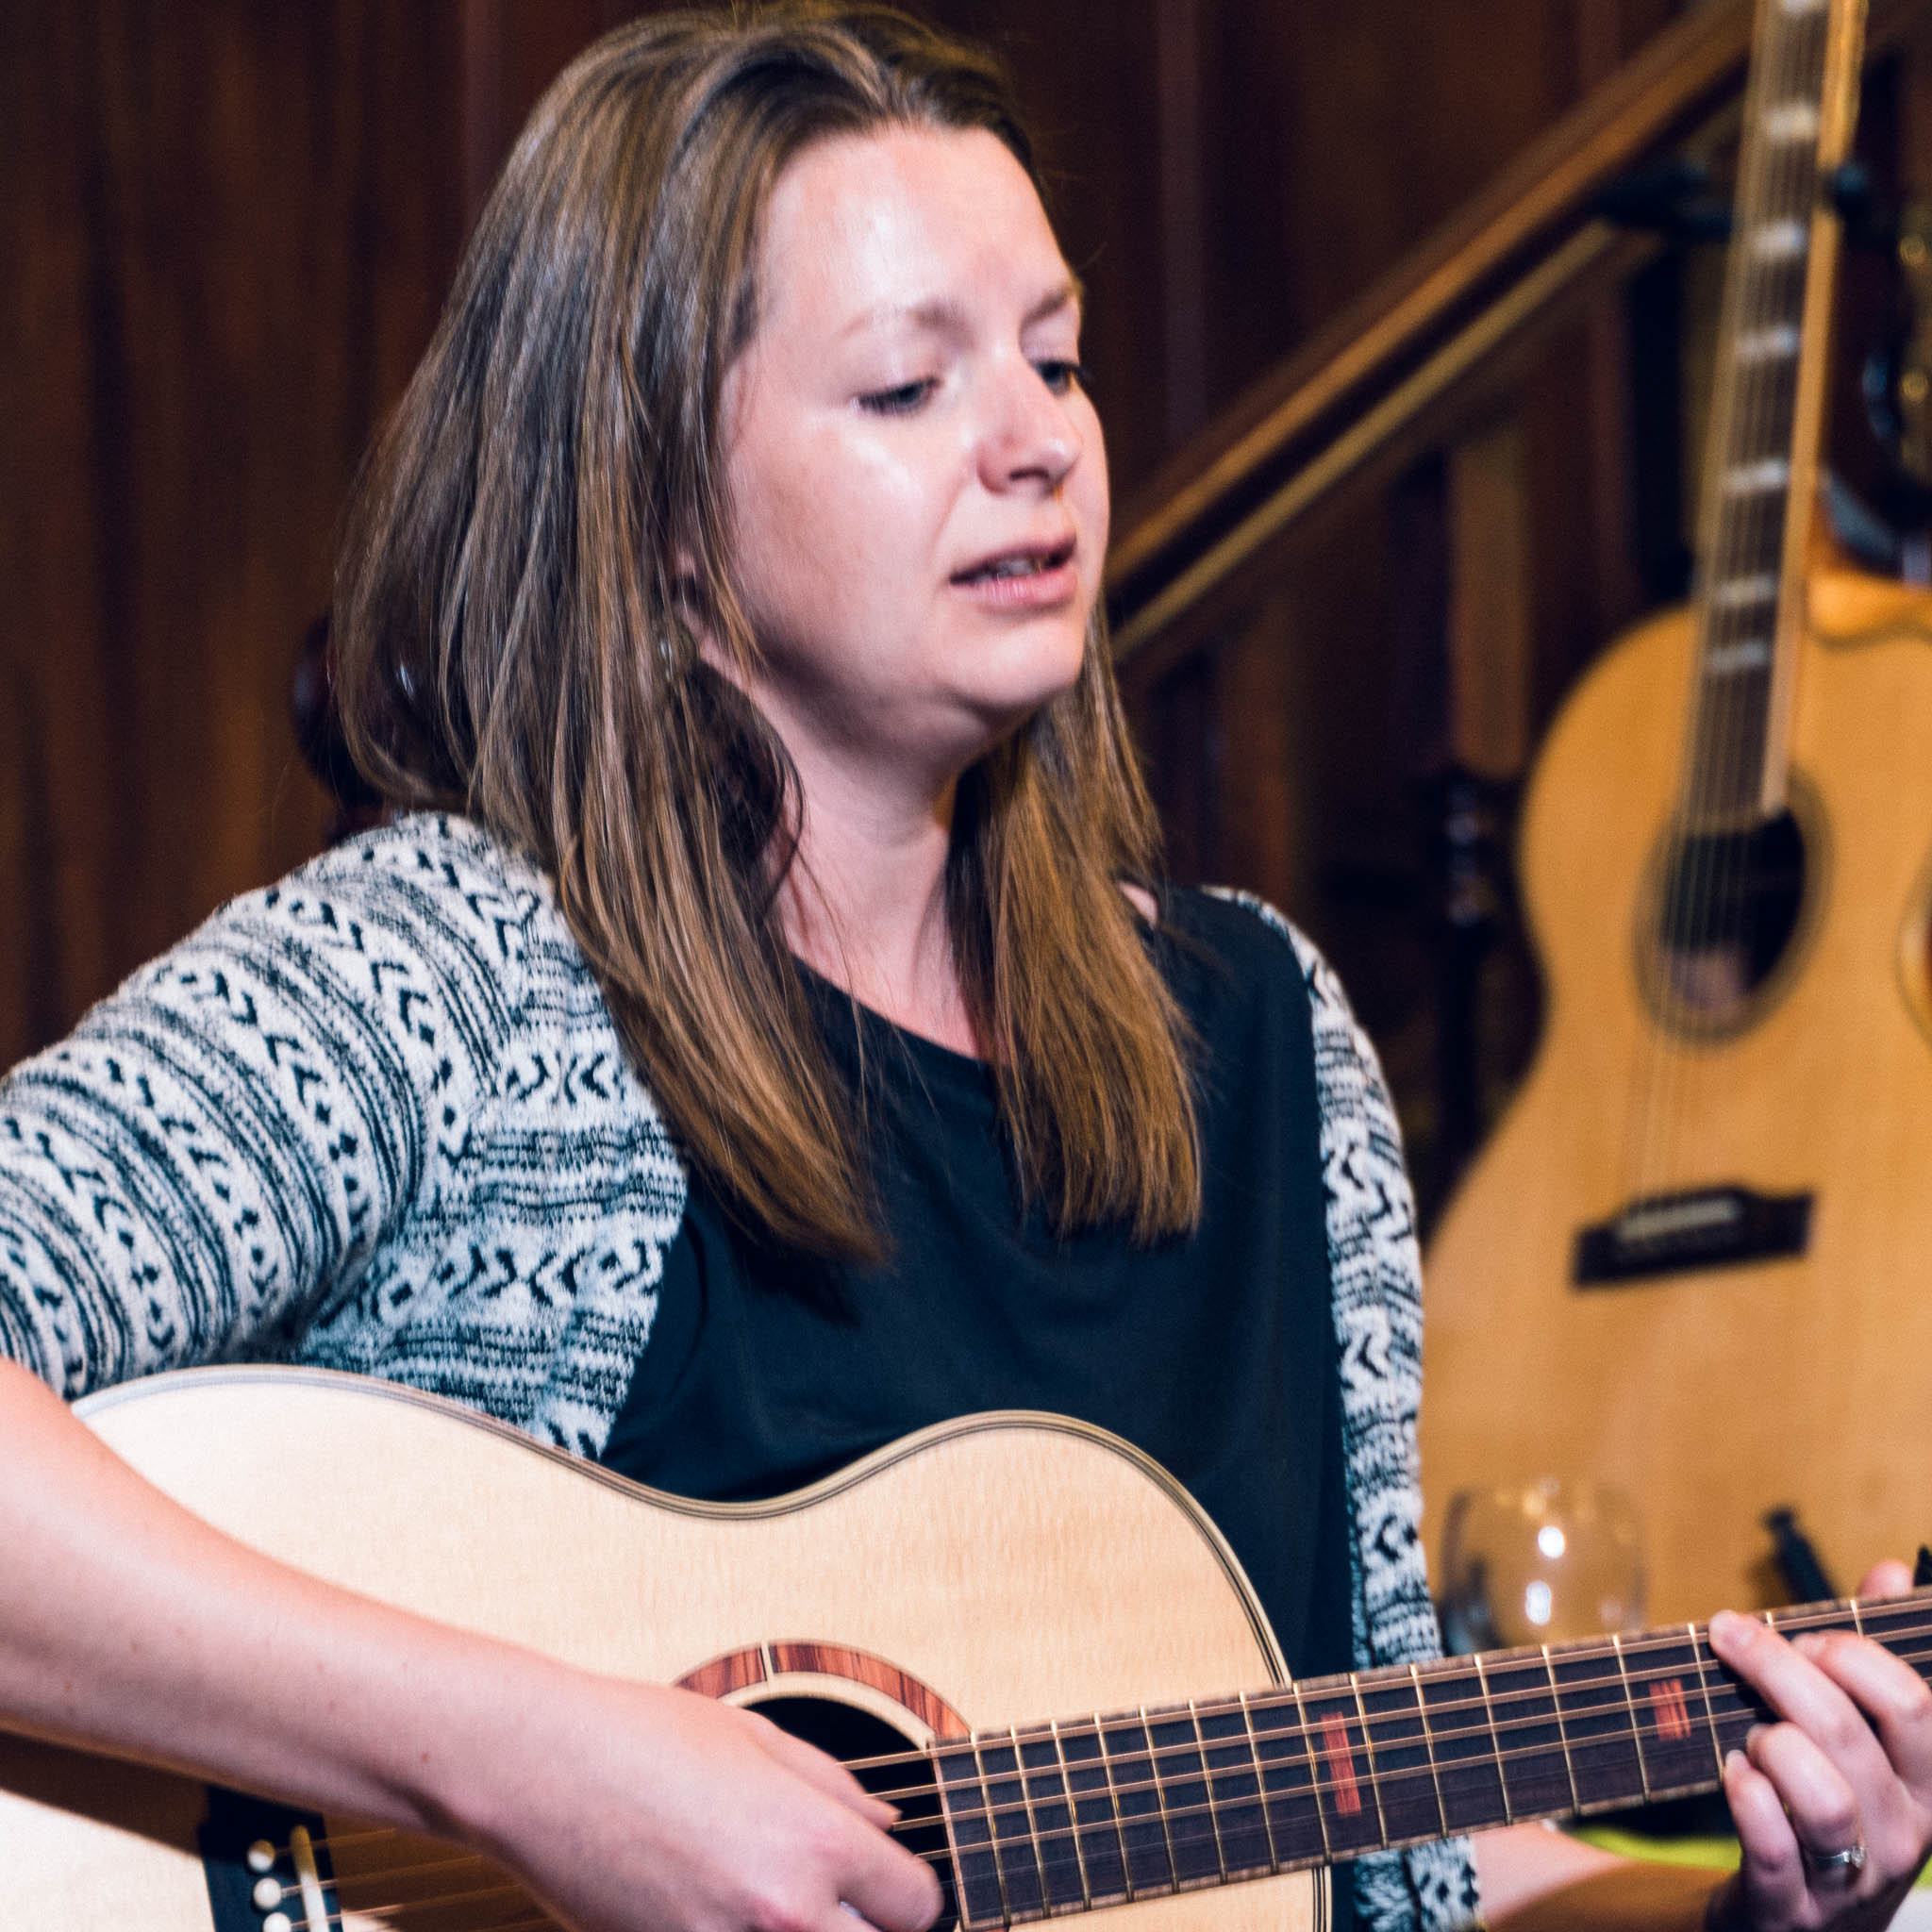 Square crop of Rosie Heydenrych playing acoustic guitar and singing